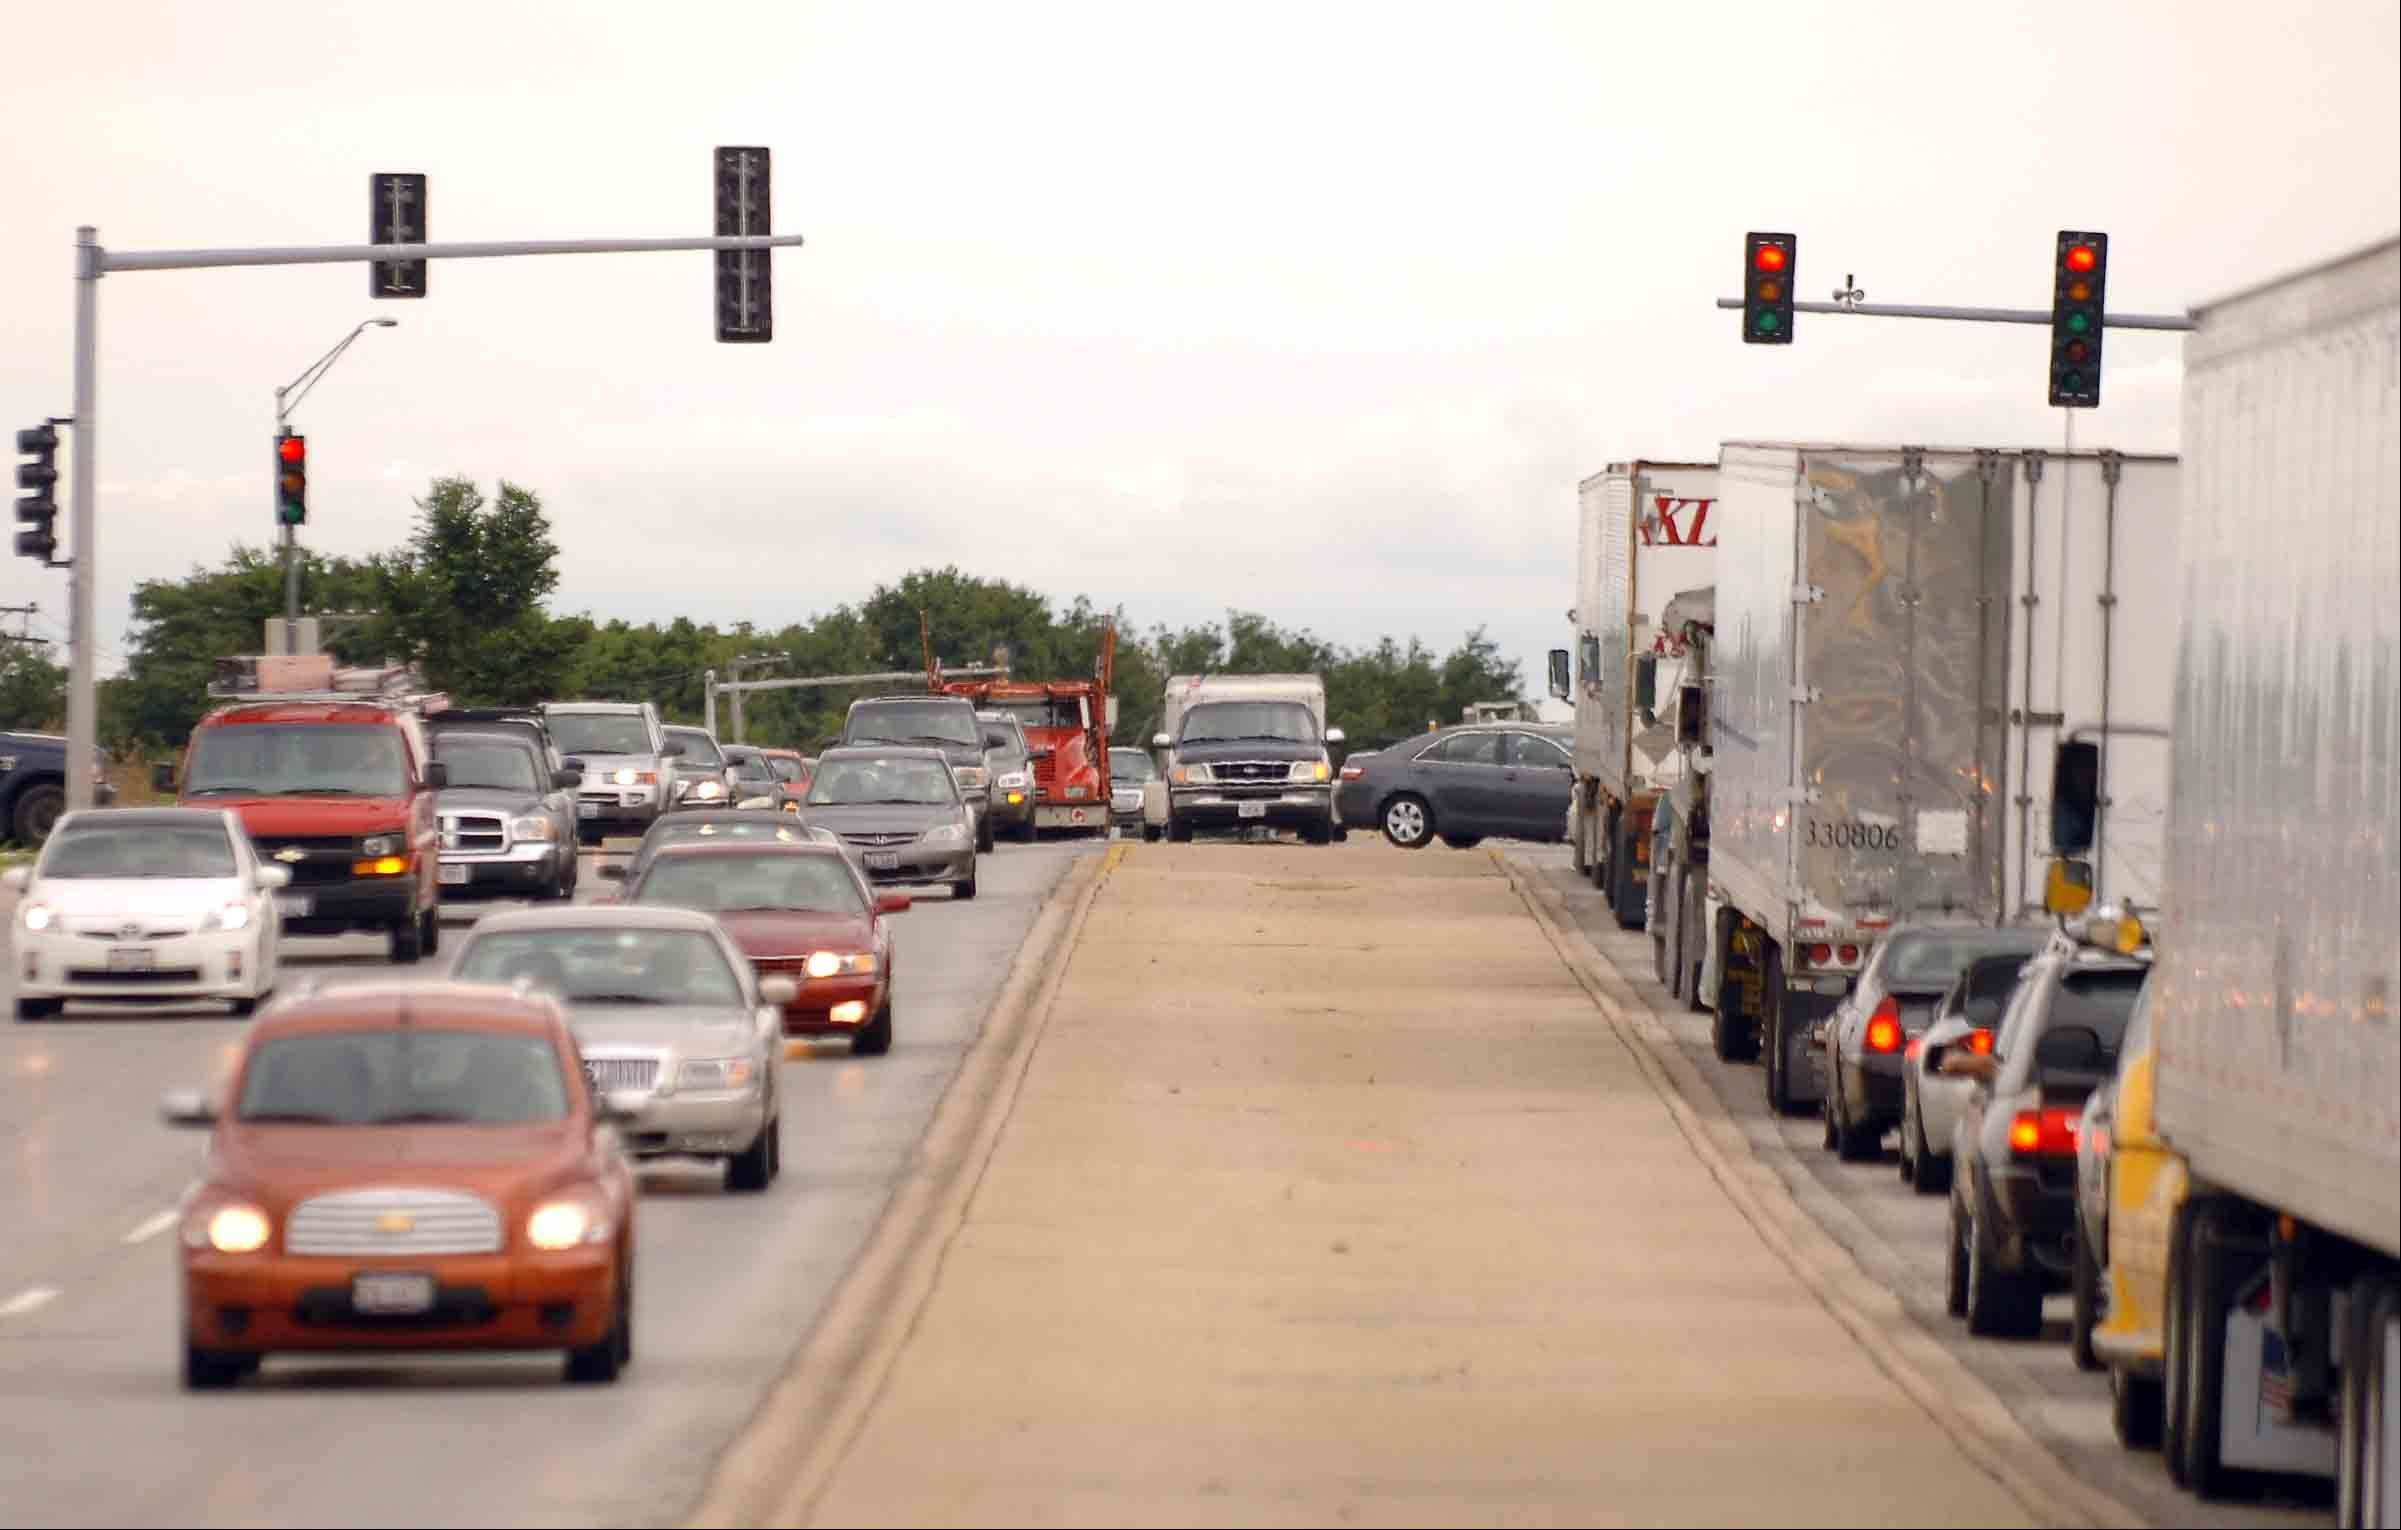 Crews are beginning construction Monday on a Route 59 expansion project in Naperville and Aurora that includes reconfiguring the interchange with I-88.